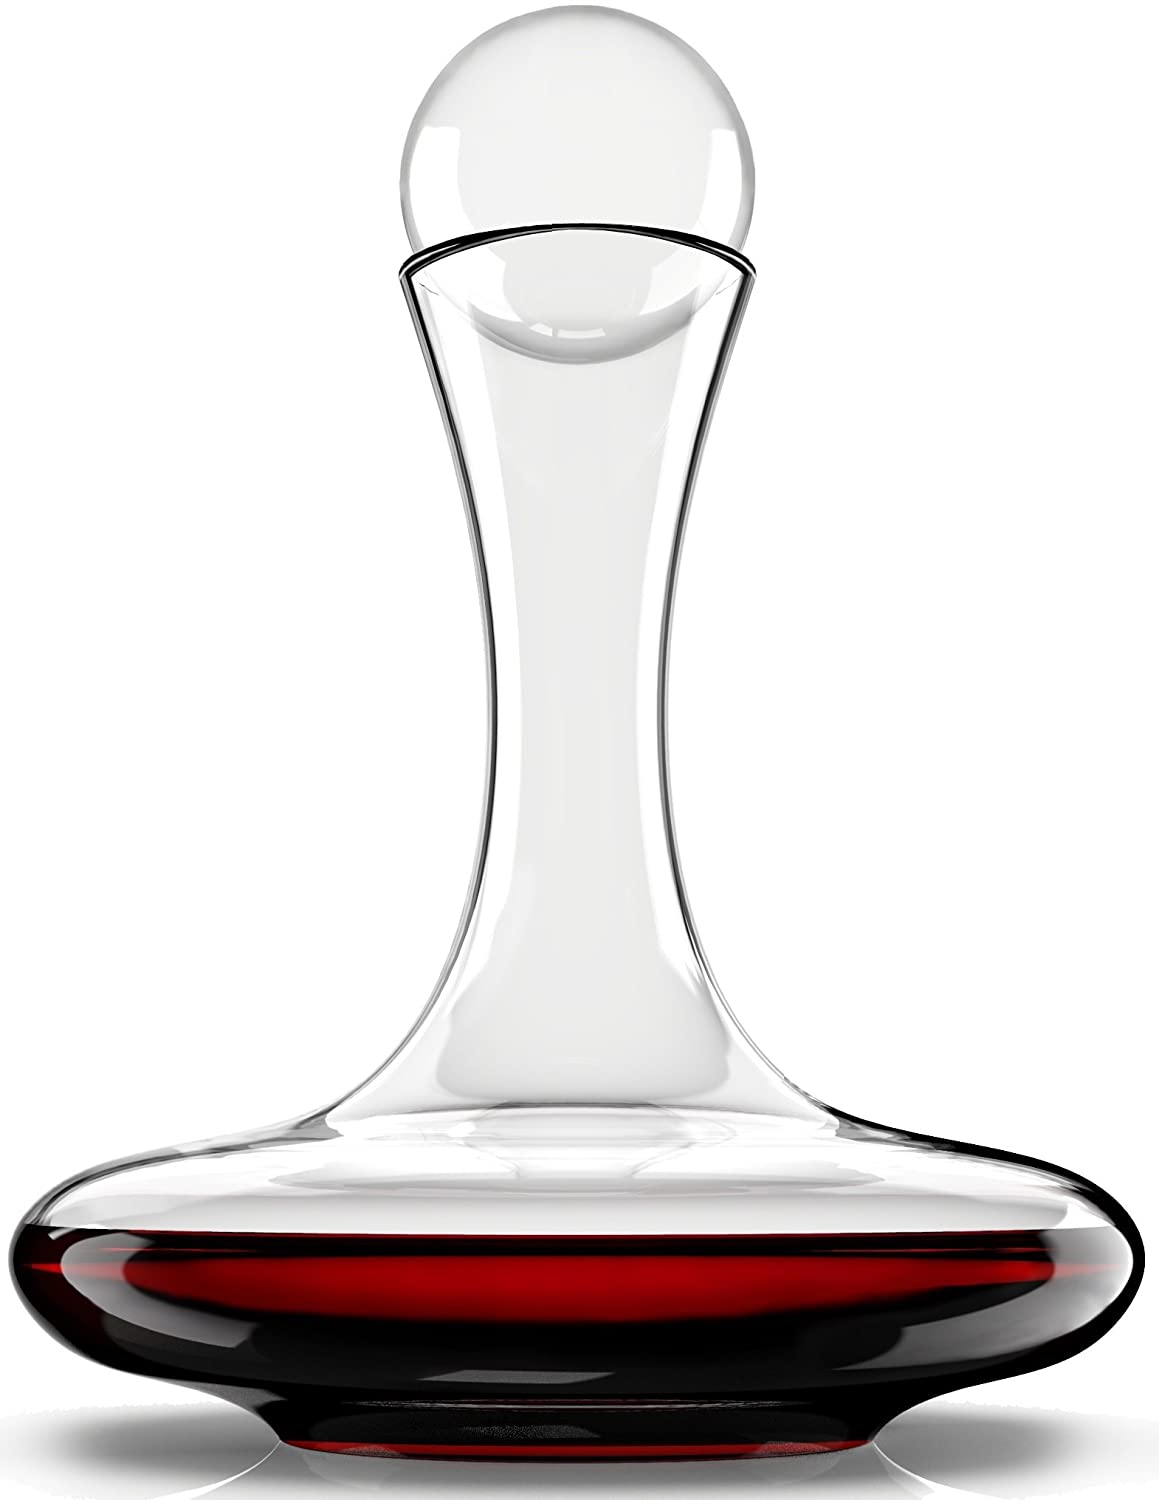 8d5913c429a9 Venero Wine Decanter Aerator Set - Lead Free Crystal Glass Carafe and  Stopper - Aerating Liquor Pourer with Lid for Red Wine, Cognac, Bourbon,  Scotch, ...